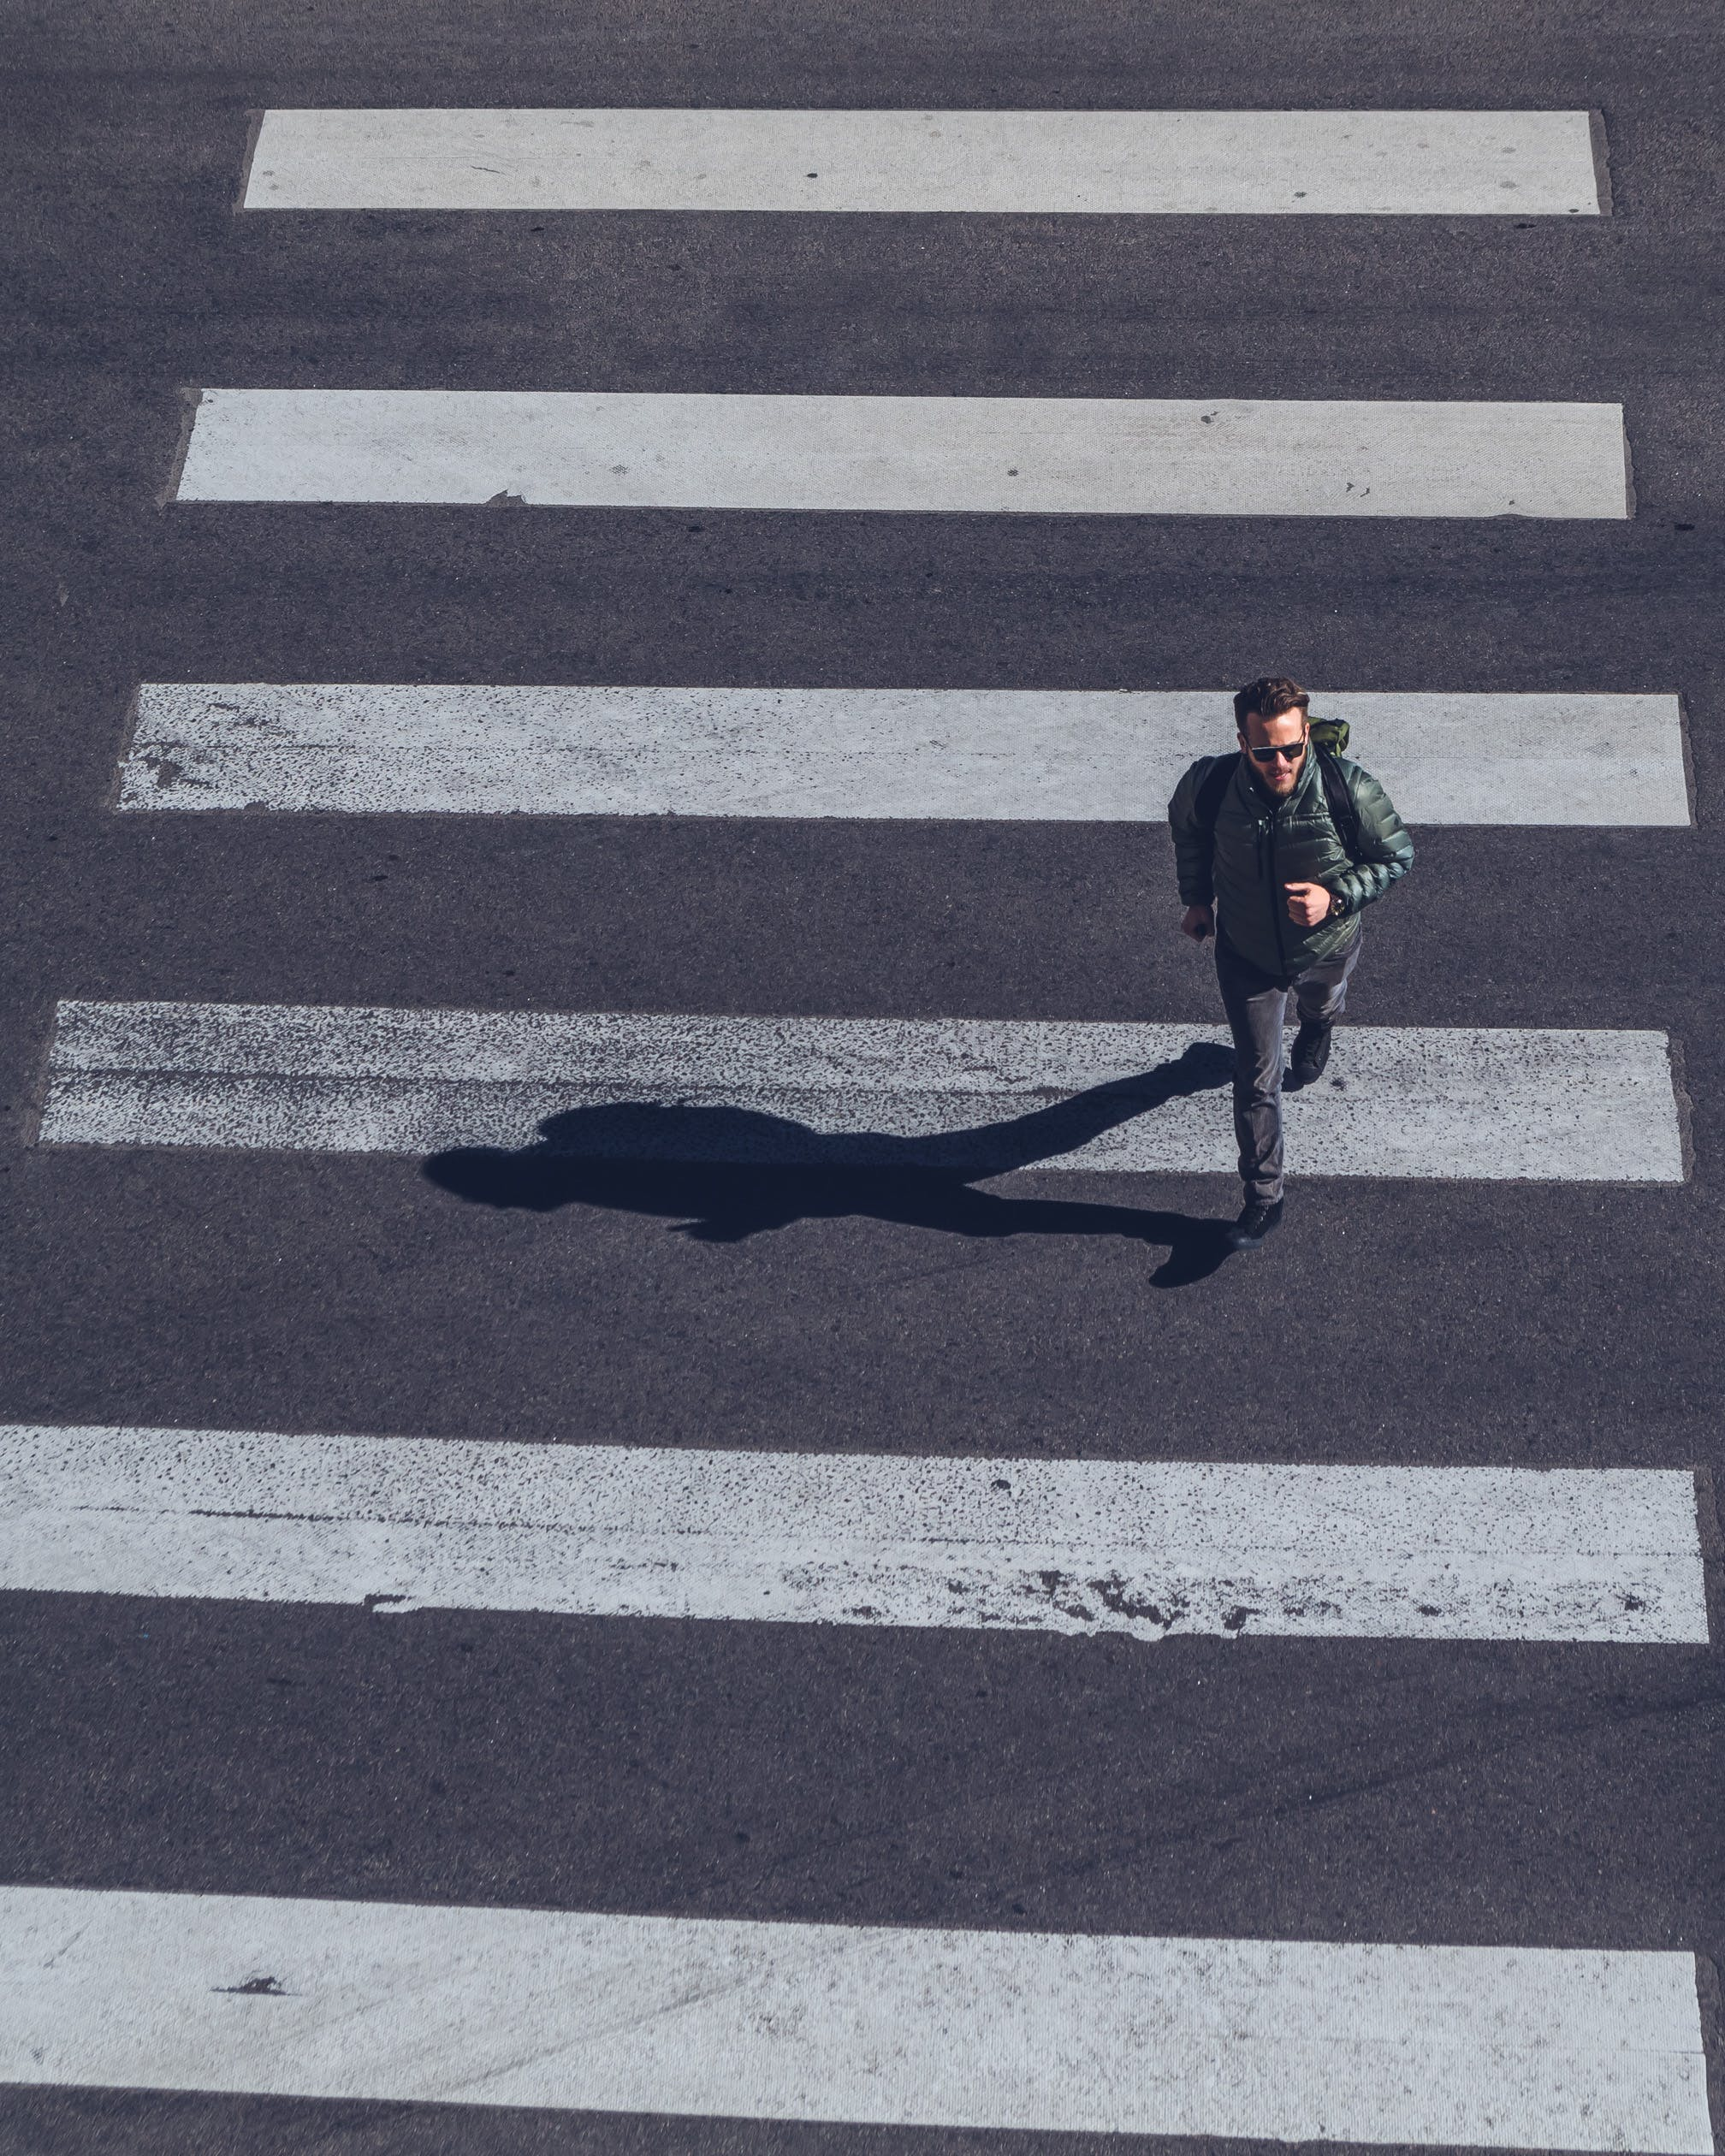 Man Crossing on Pedestrian Lane